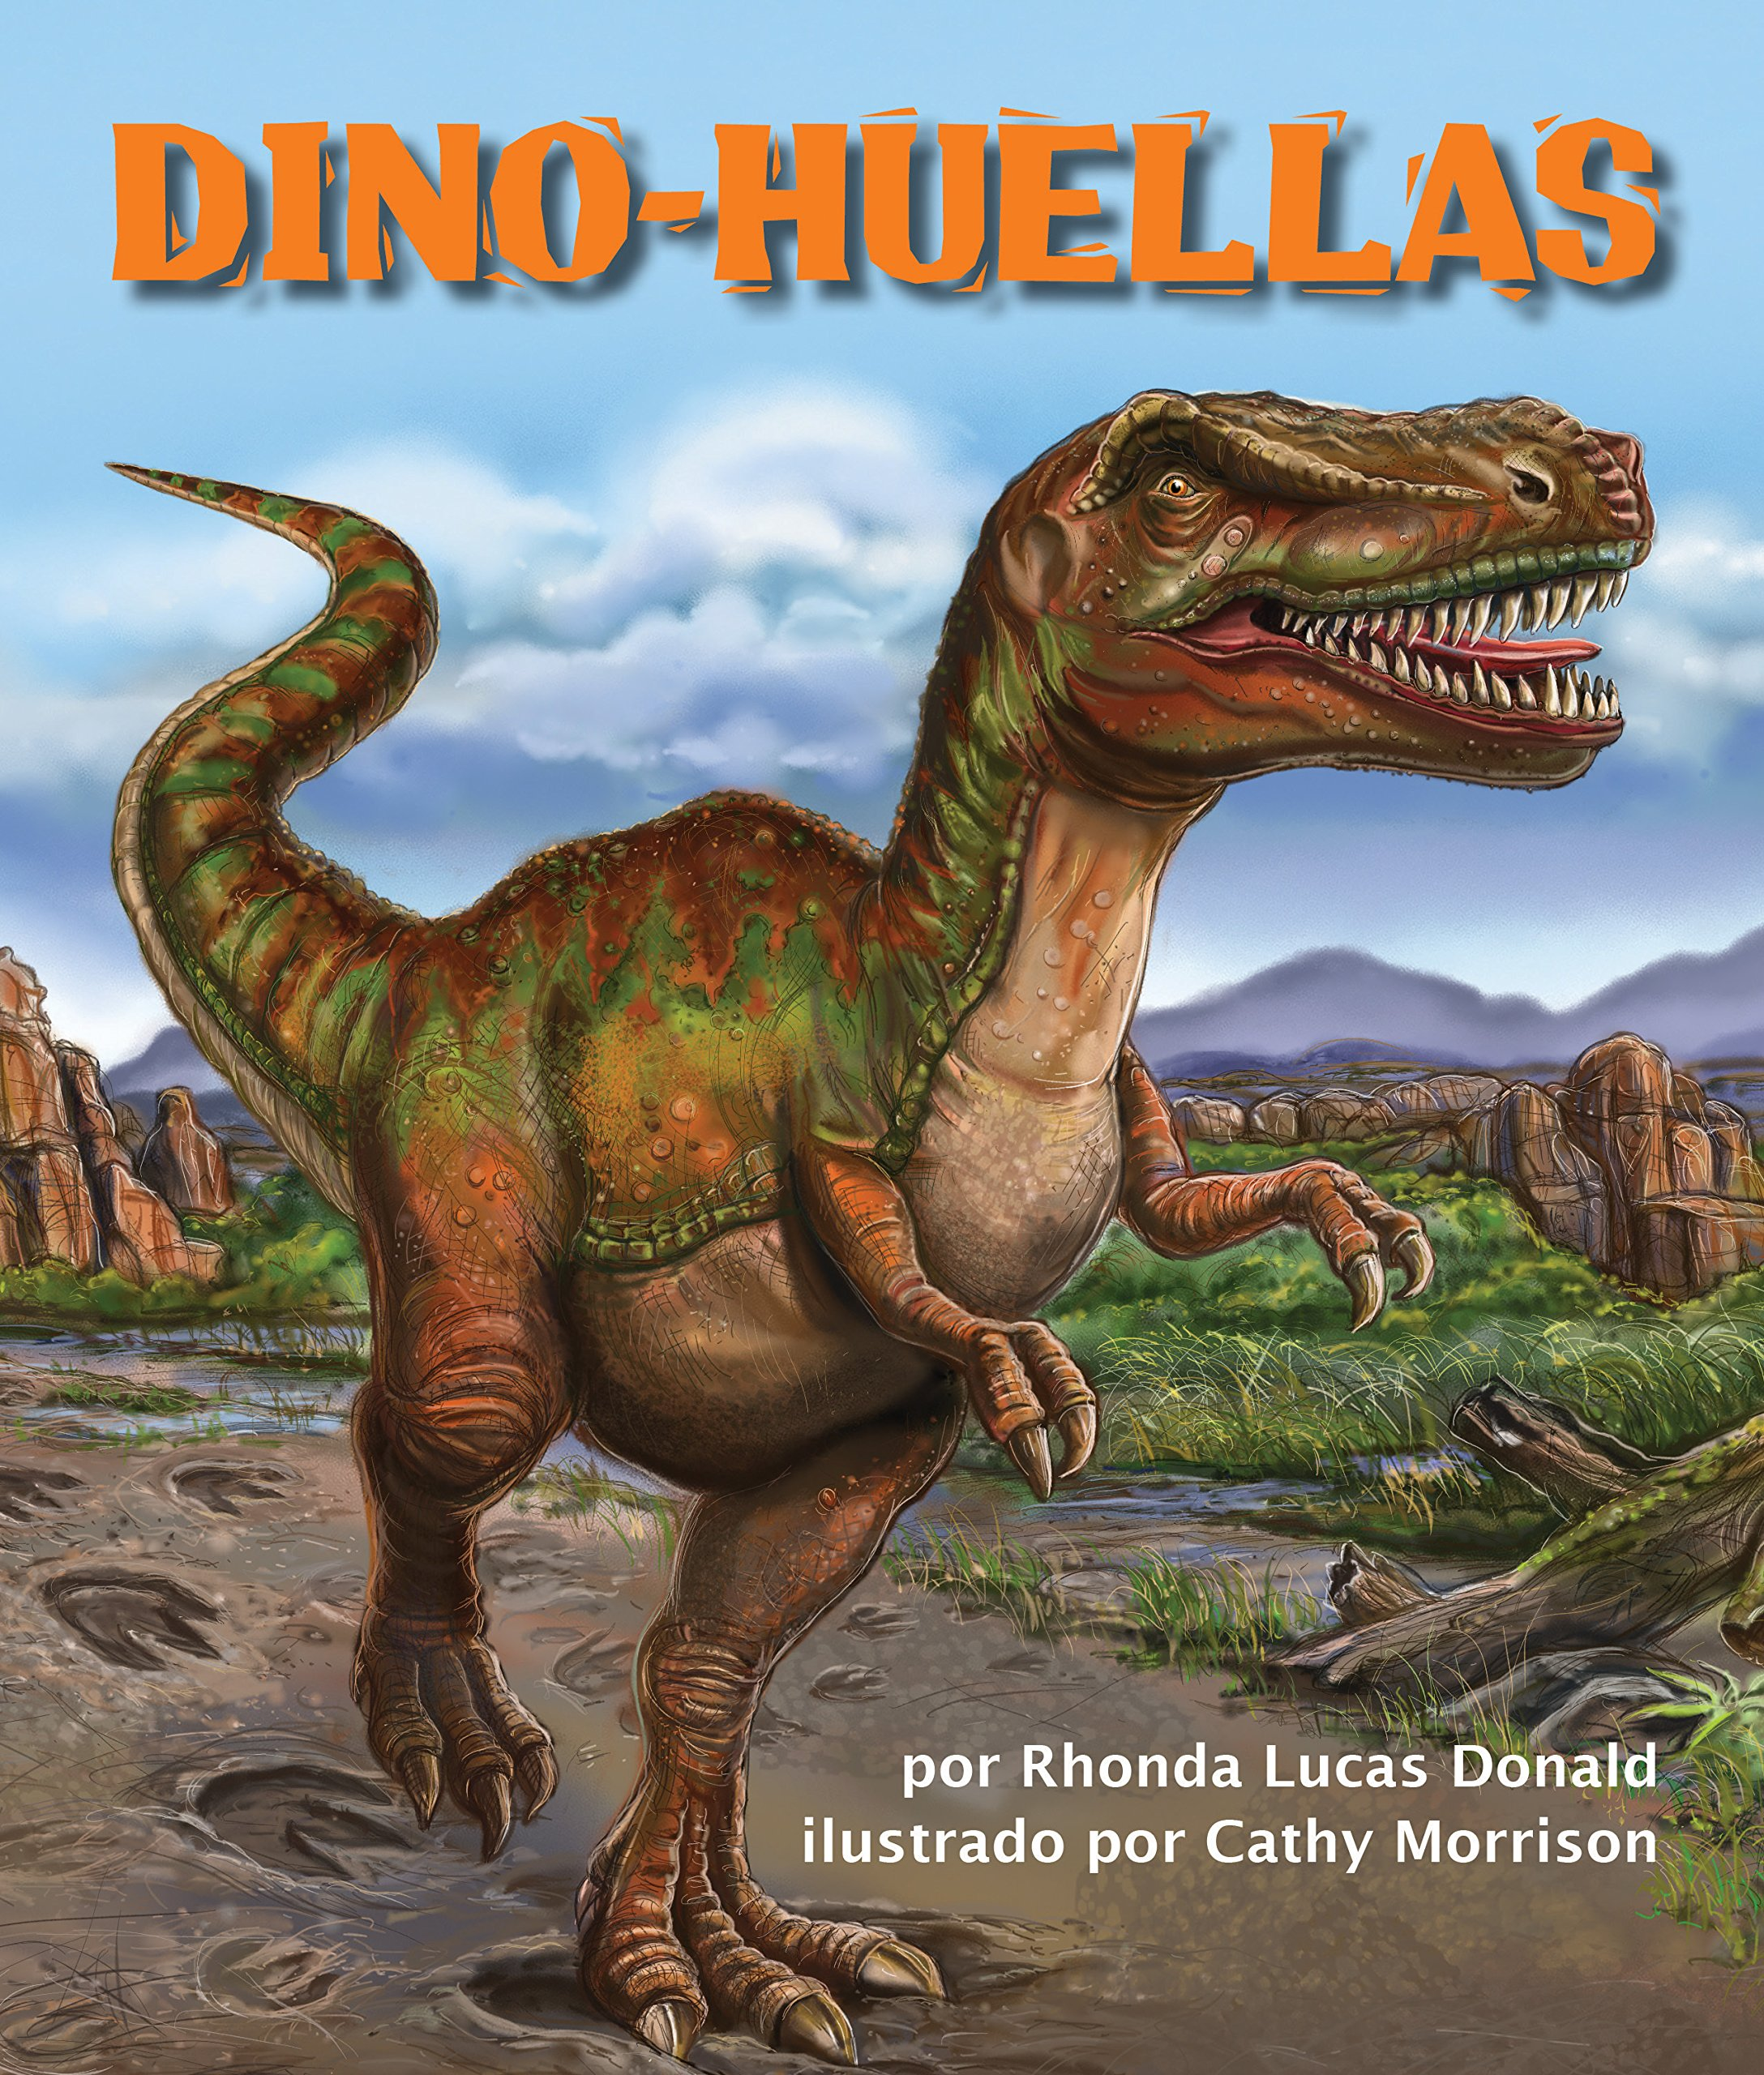 Dino-huellas [Dino Tracks] (Spanish Edition) (Arbordale Collection) pdf epub